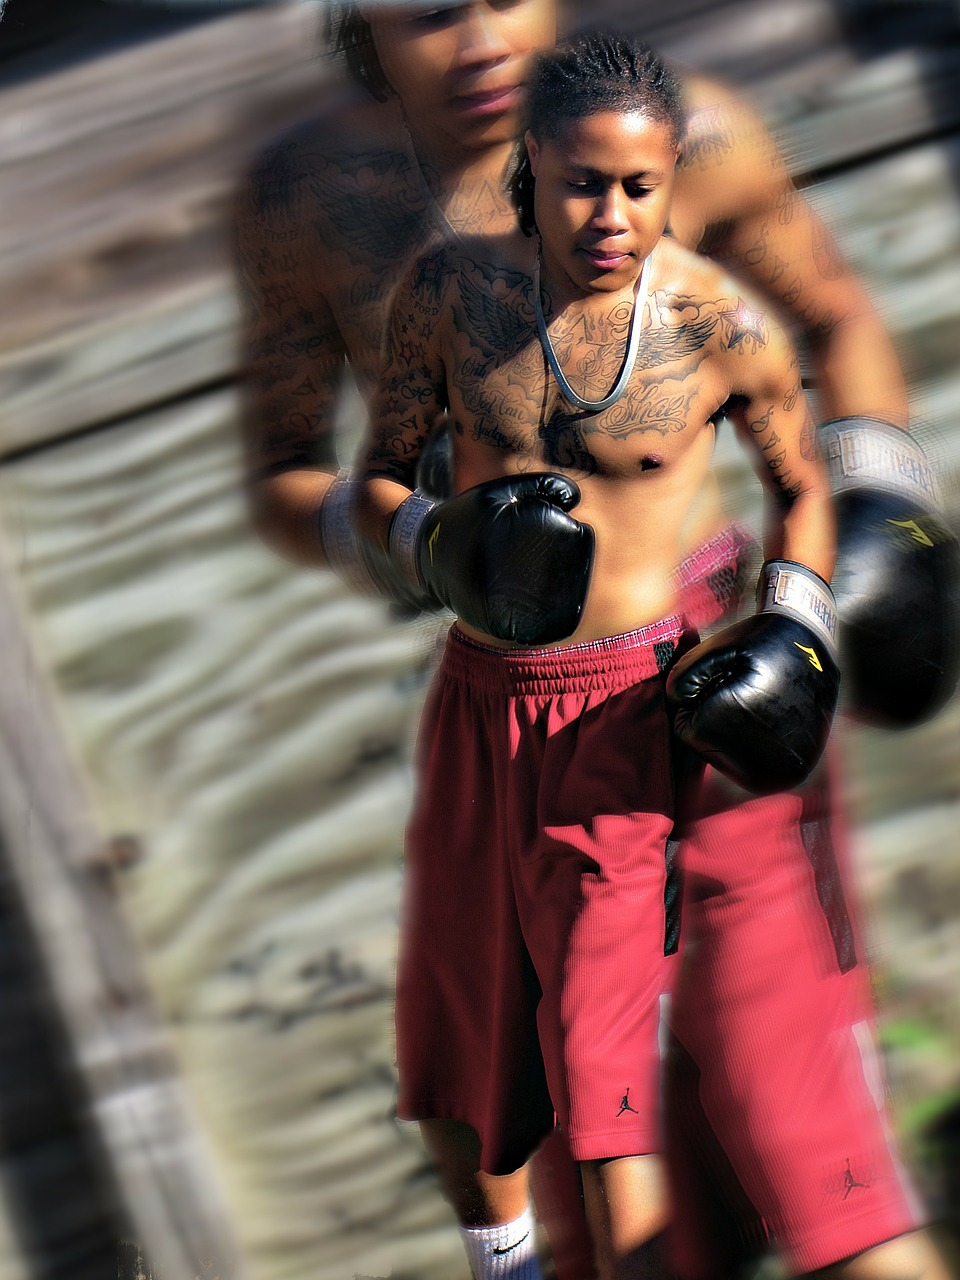 young man boxing free photo